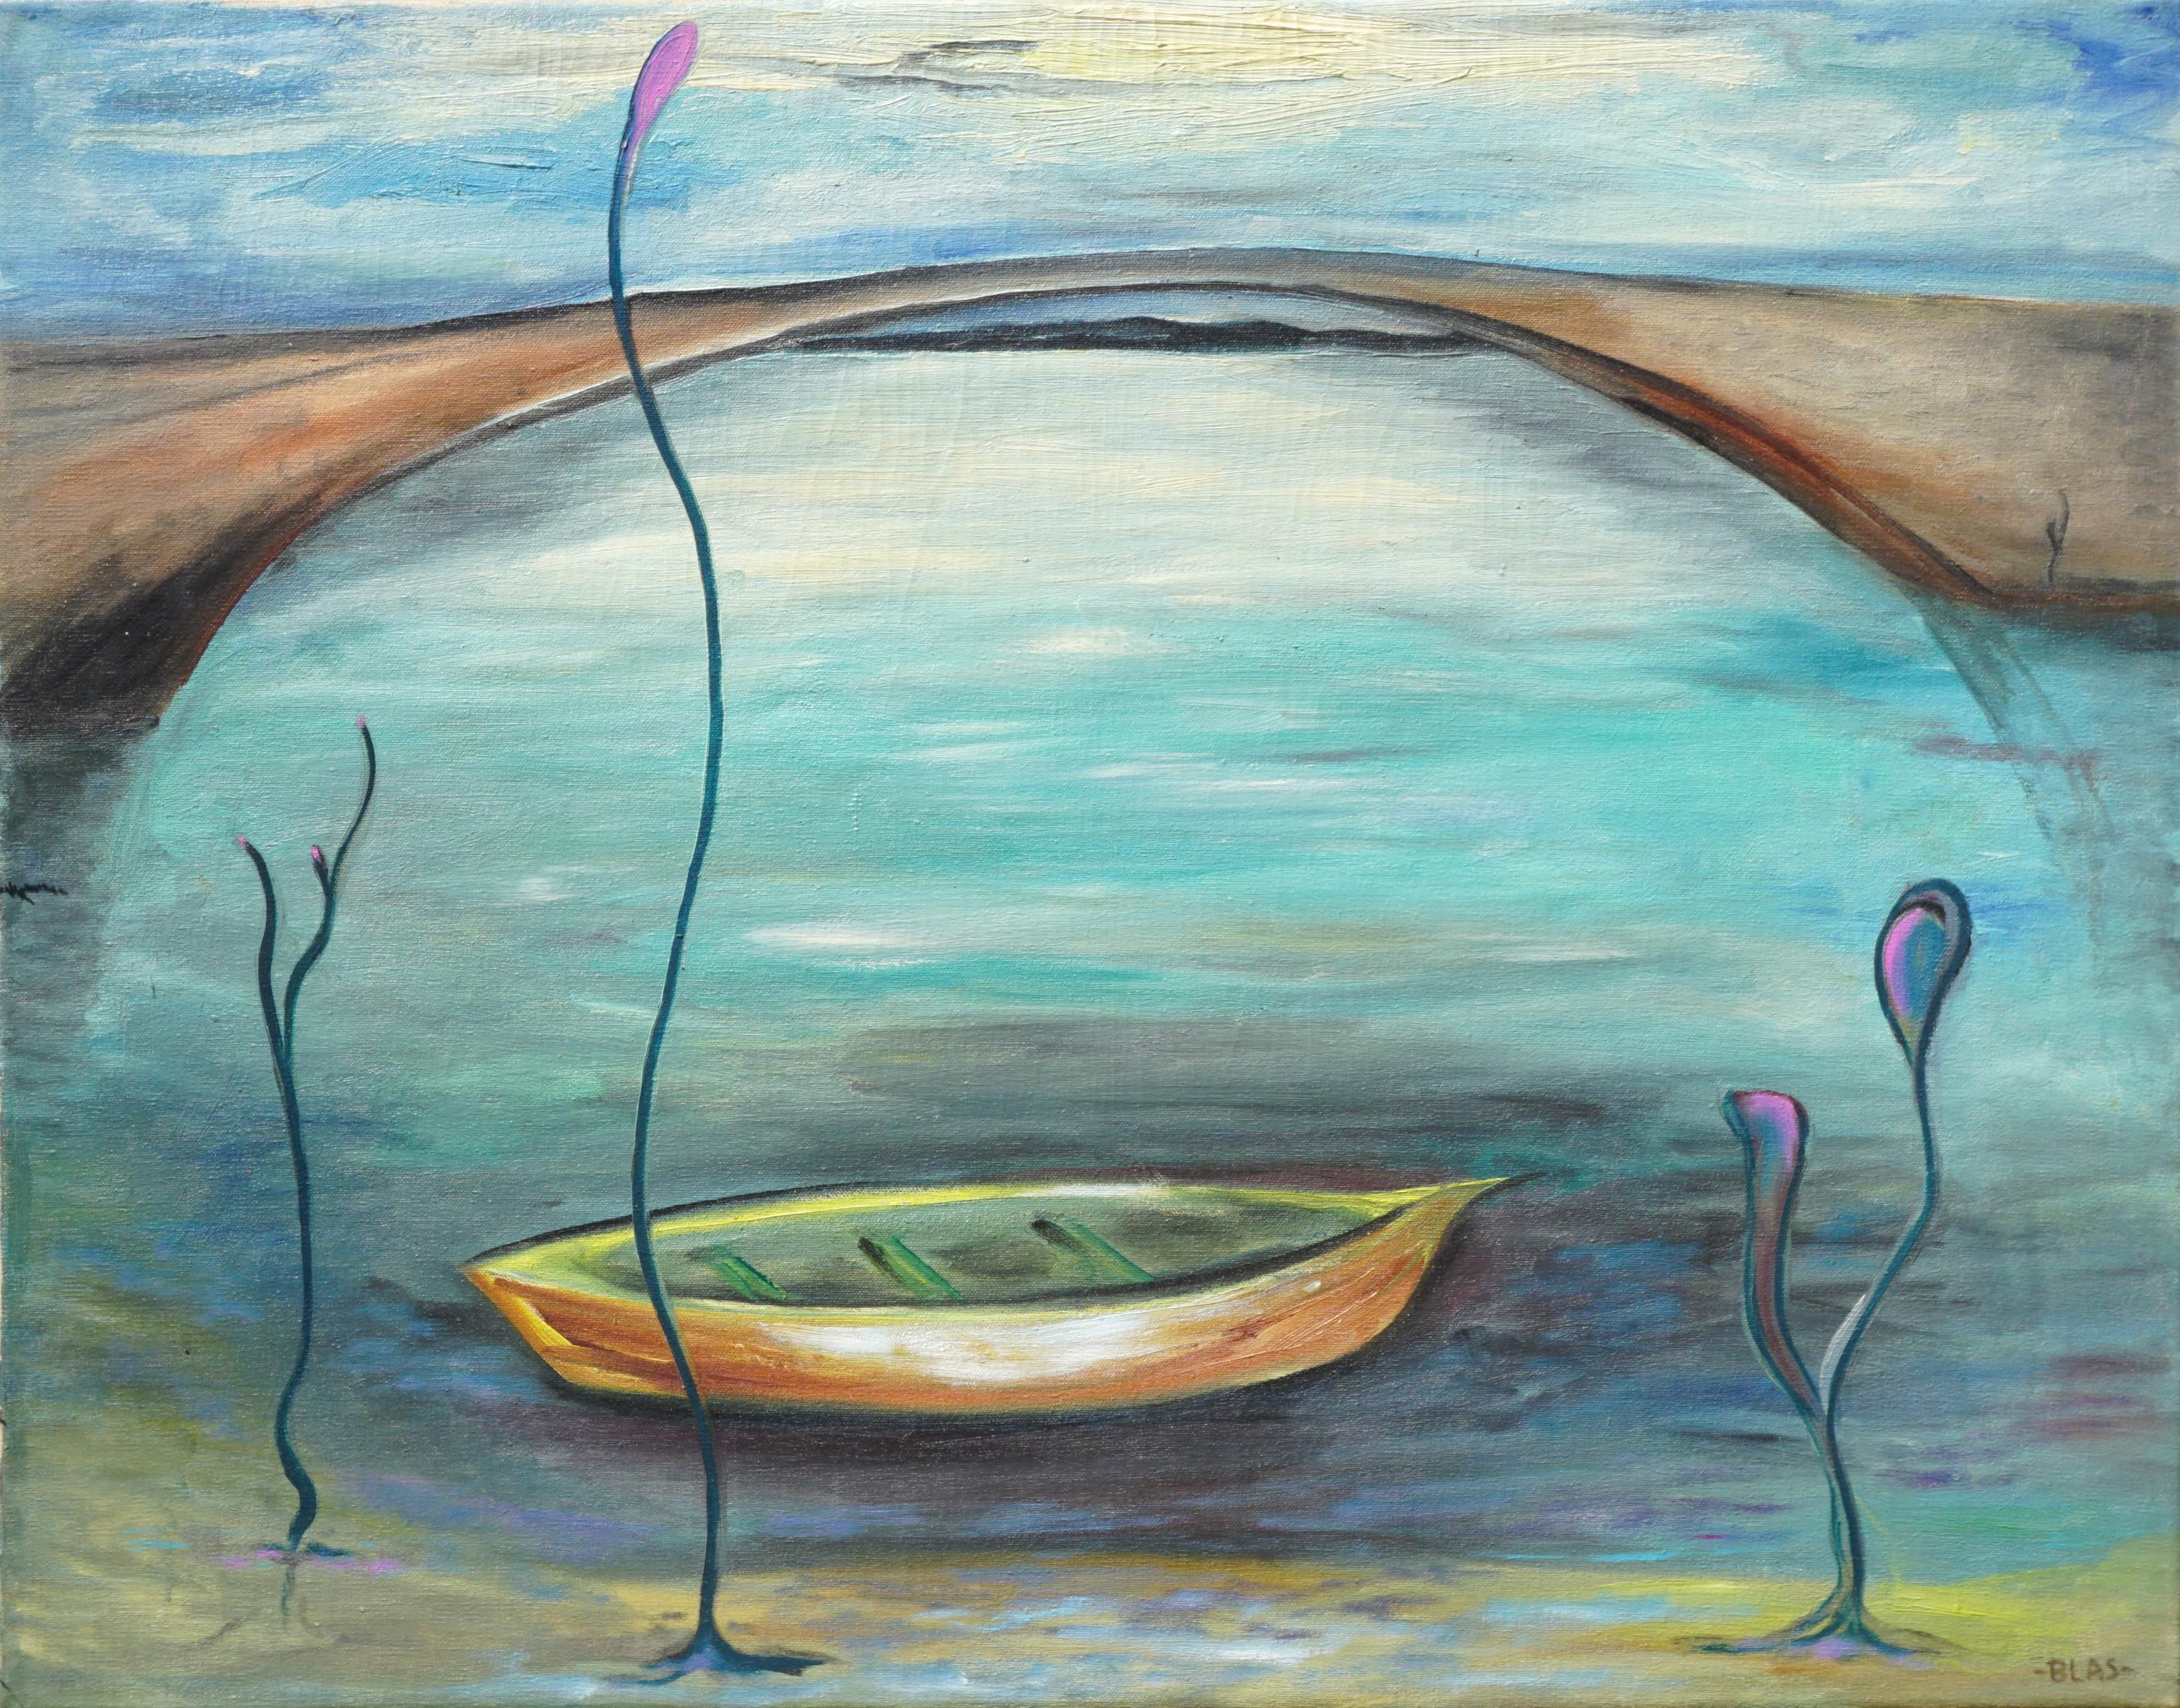 Life is But A Dream - Mid Century Hawaii Surreal Abstract Landscape with Boat